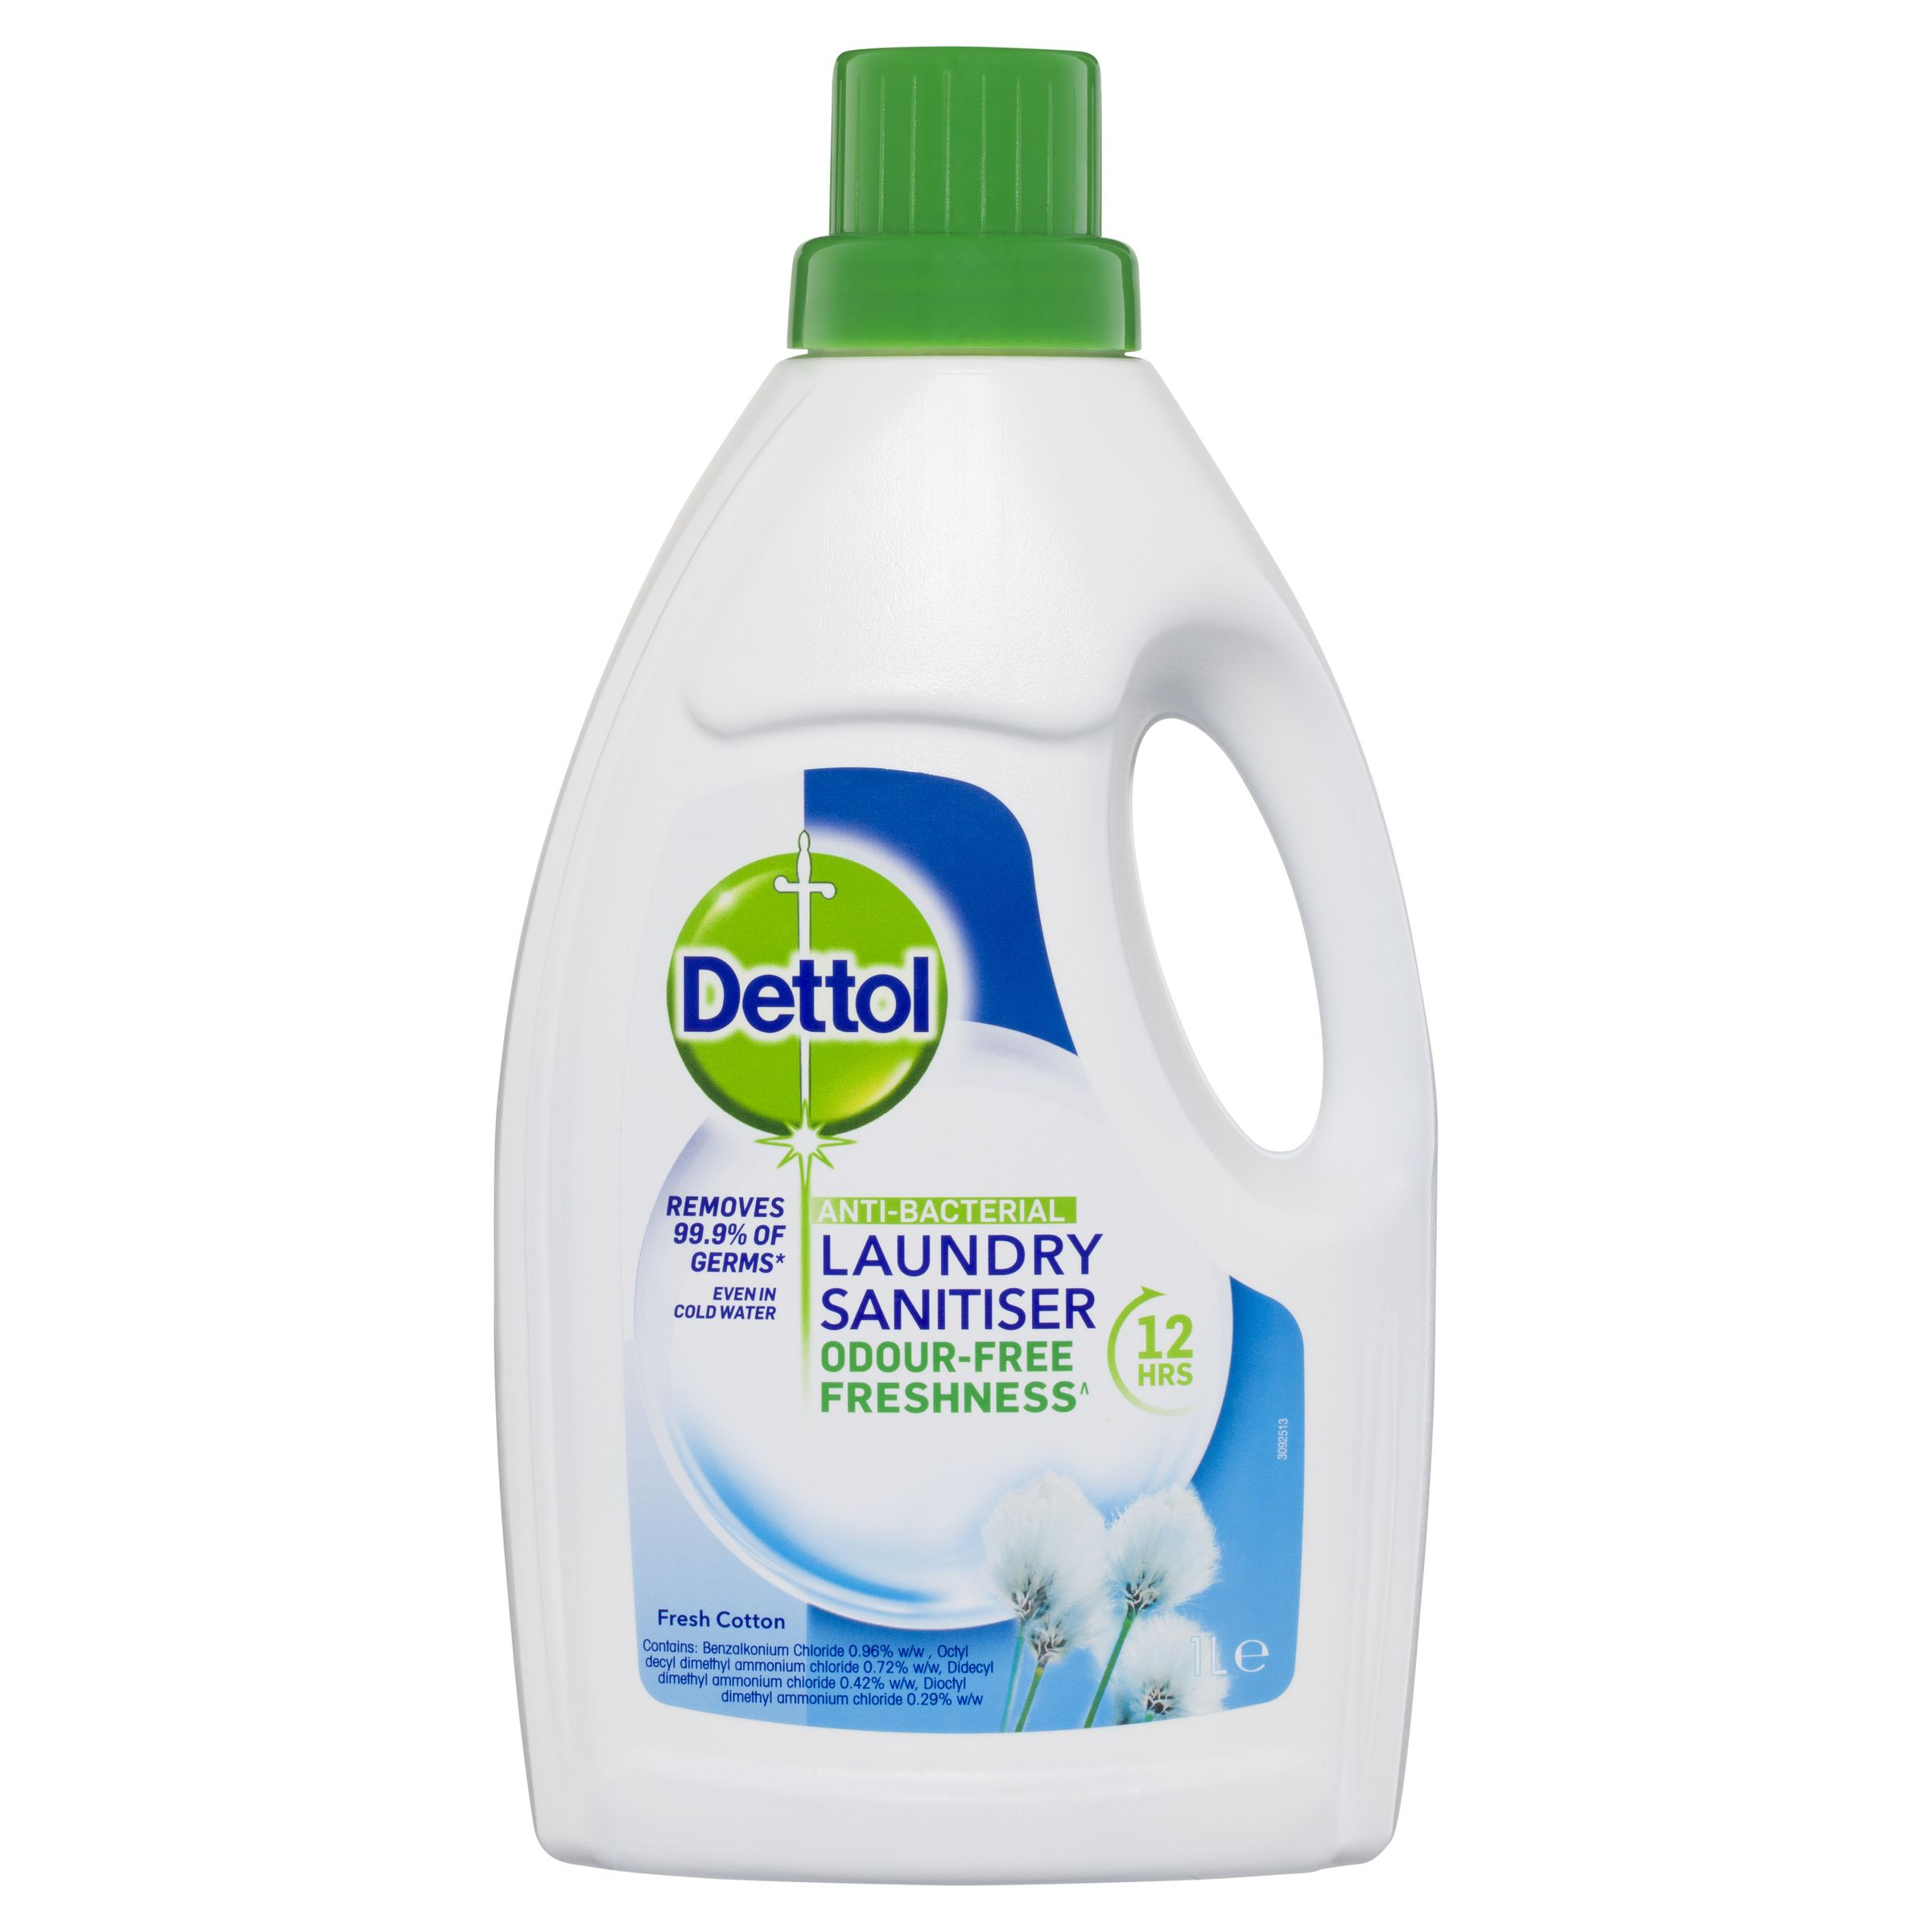 Dettol Anti-bacterial Laundry Sanitiser 1L